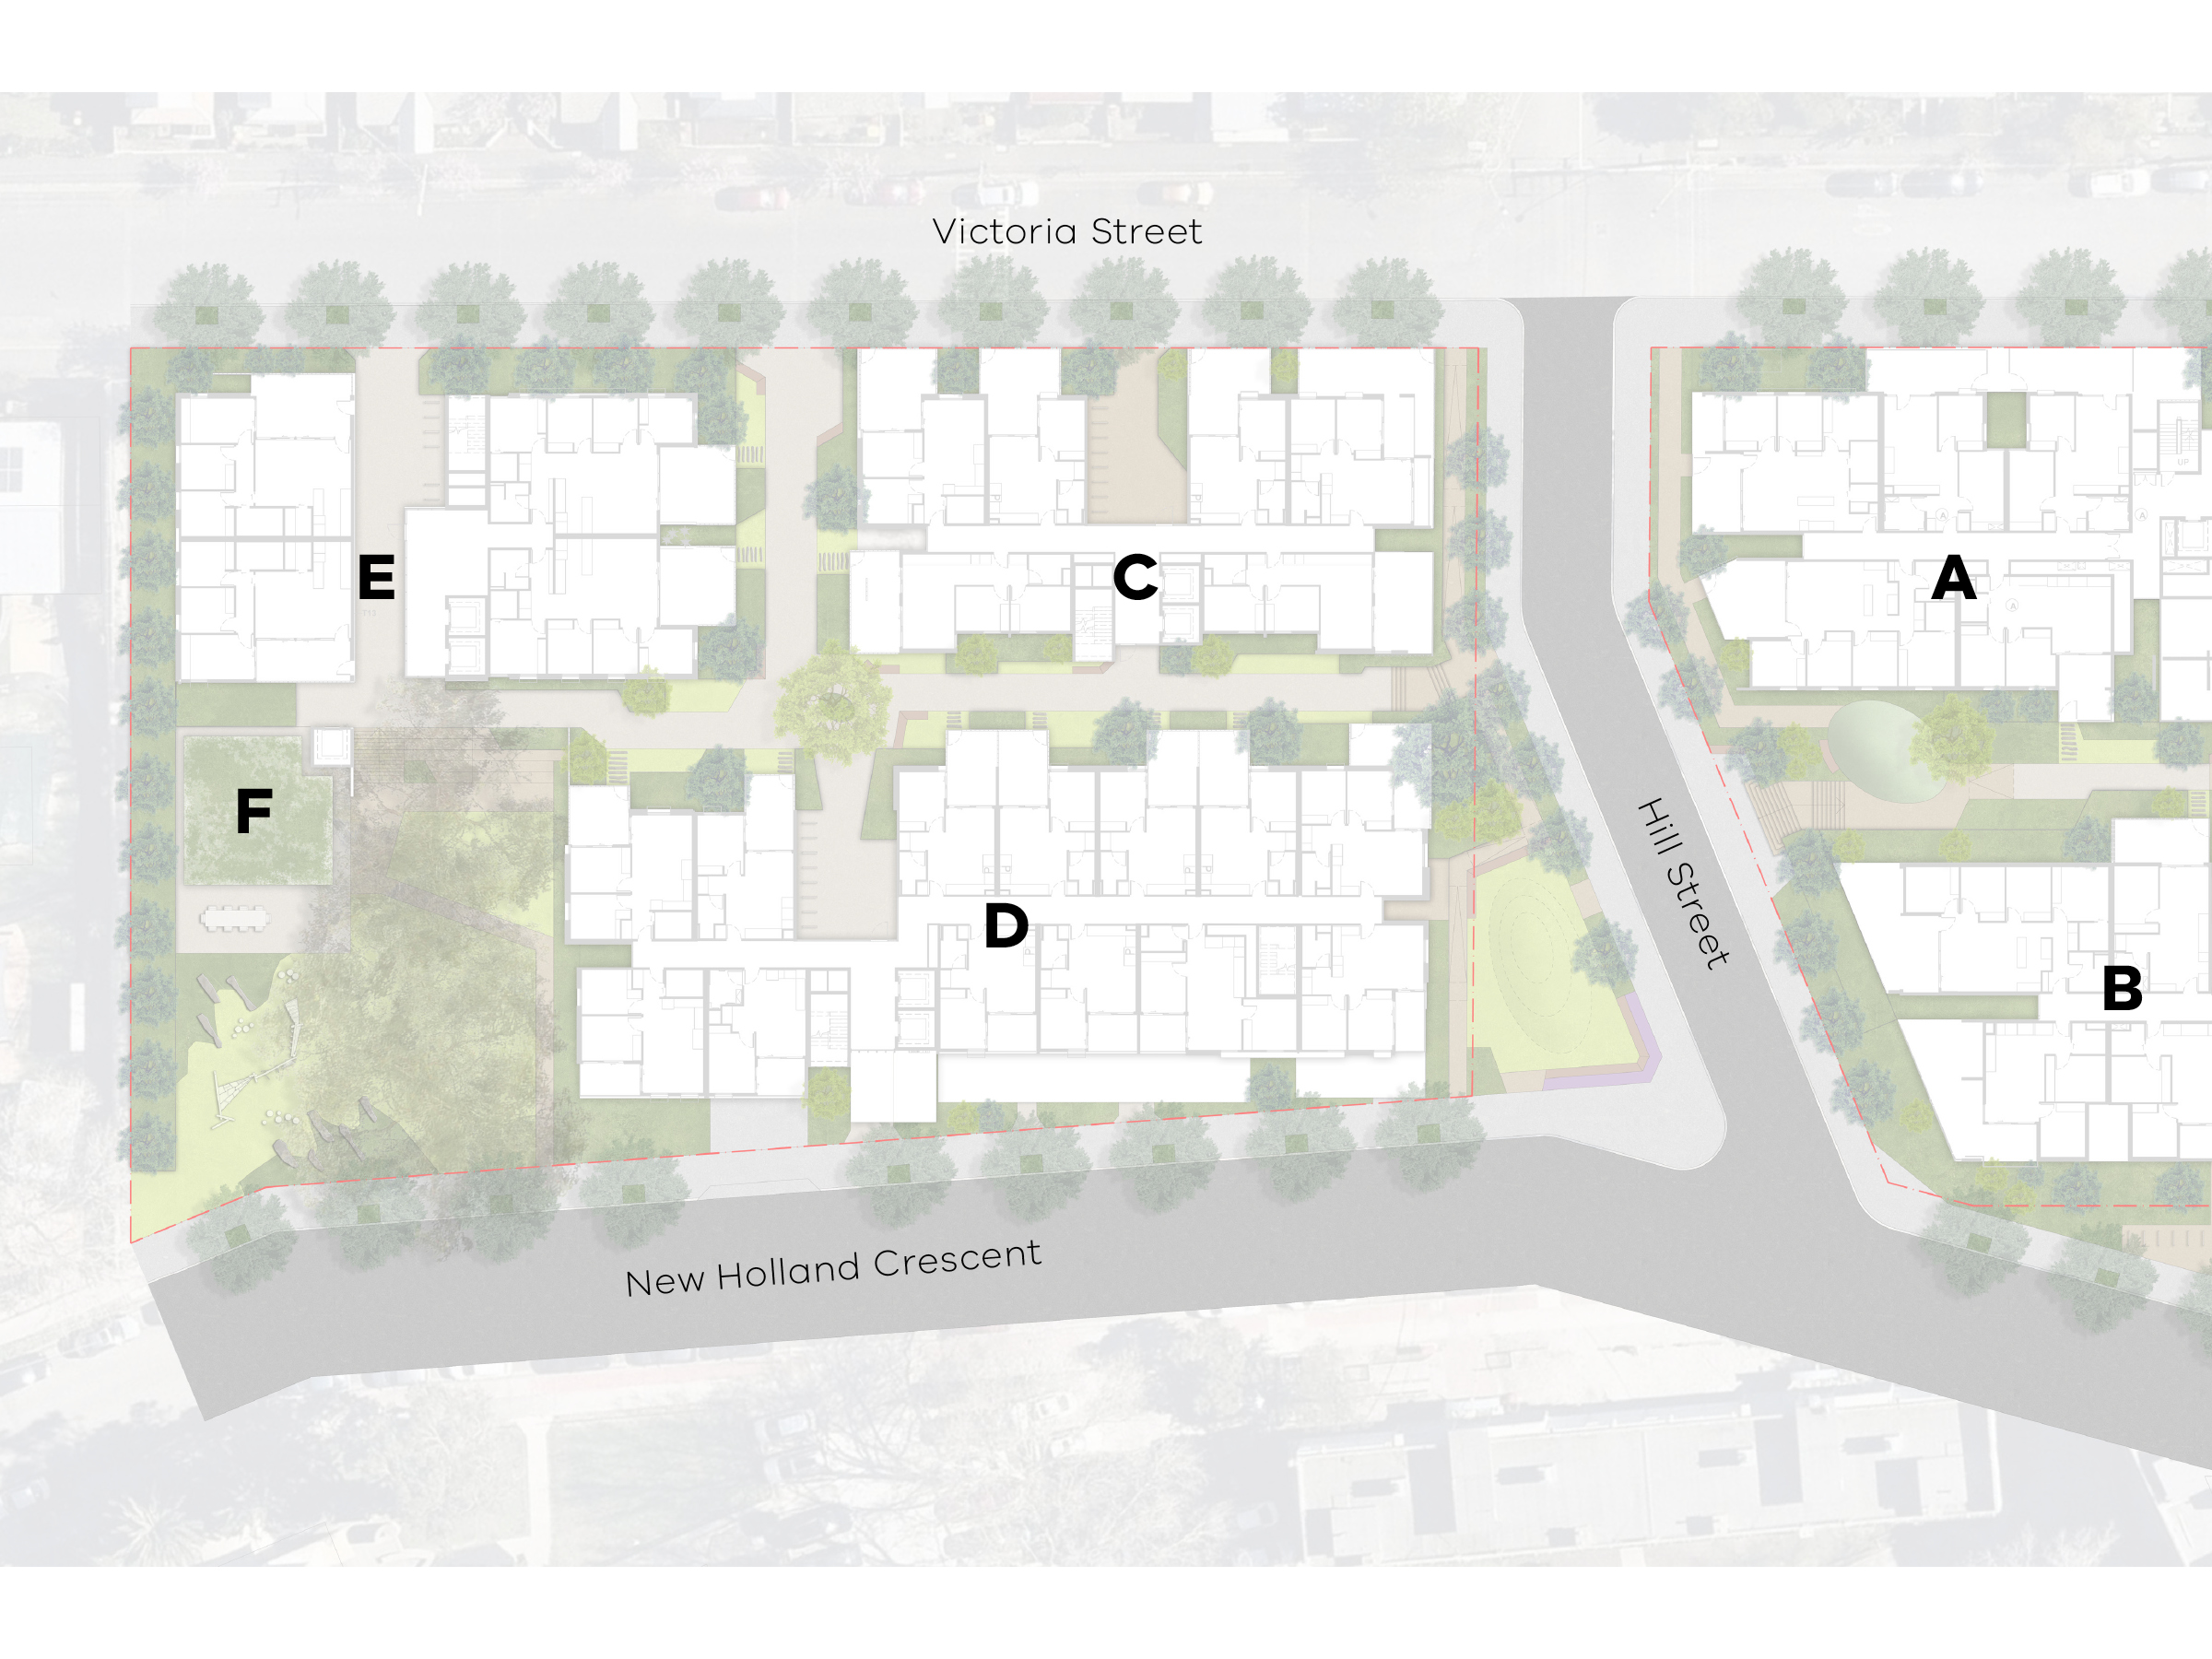 Map showing the new development south of Hill Street, east of Victoria Street and west of New Holland Crescent.